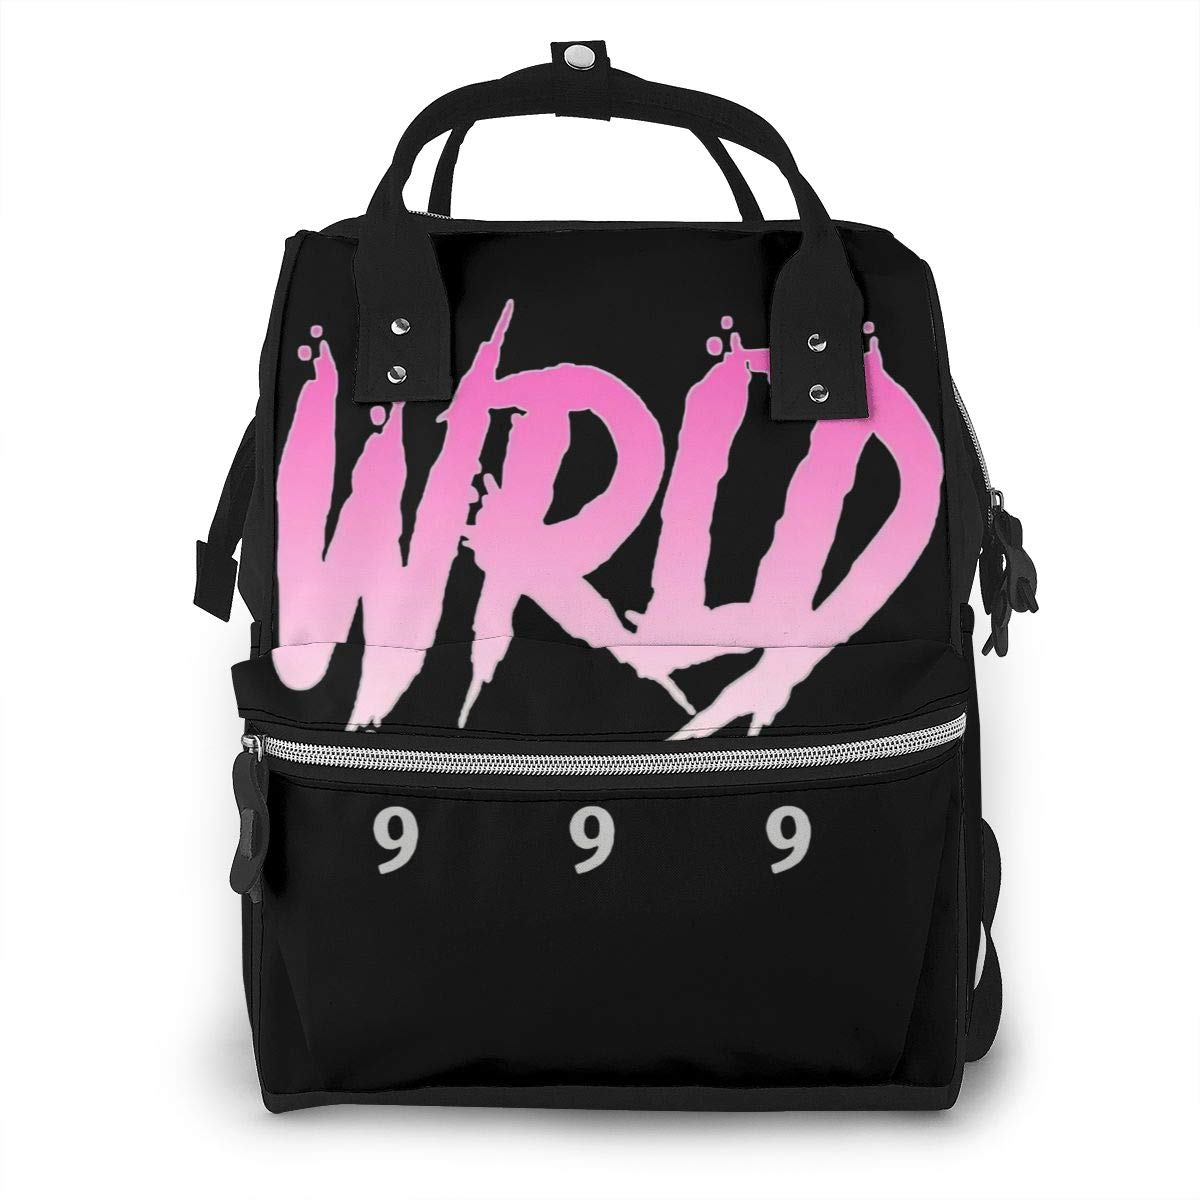 Rip 9 9 9 Juice Wrld Hip Hop Durable Large Capacity Diaper Bag Mommy Backpack